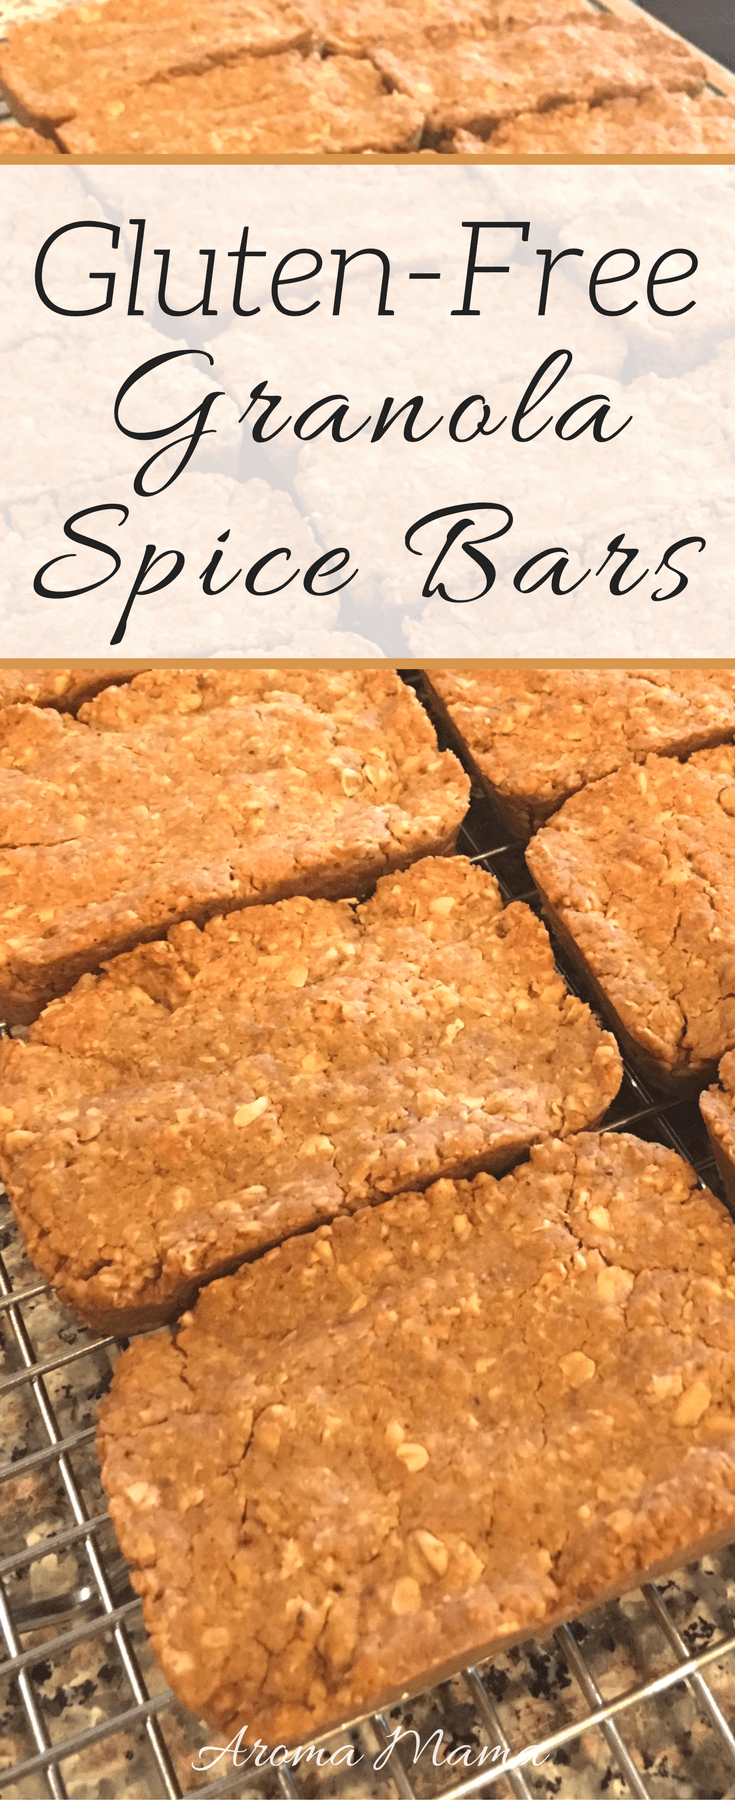 These gluten-free granola spice bars are great as a snack or as a dessert. They are easy to make and easy to pack for school or work.